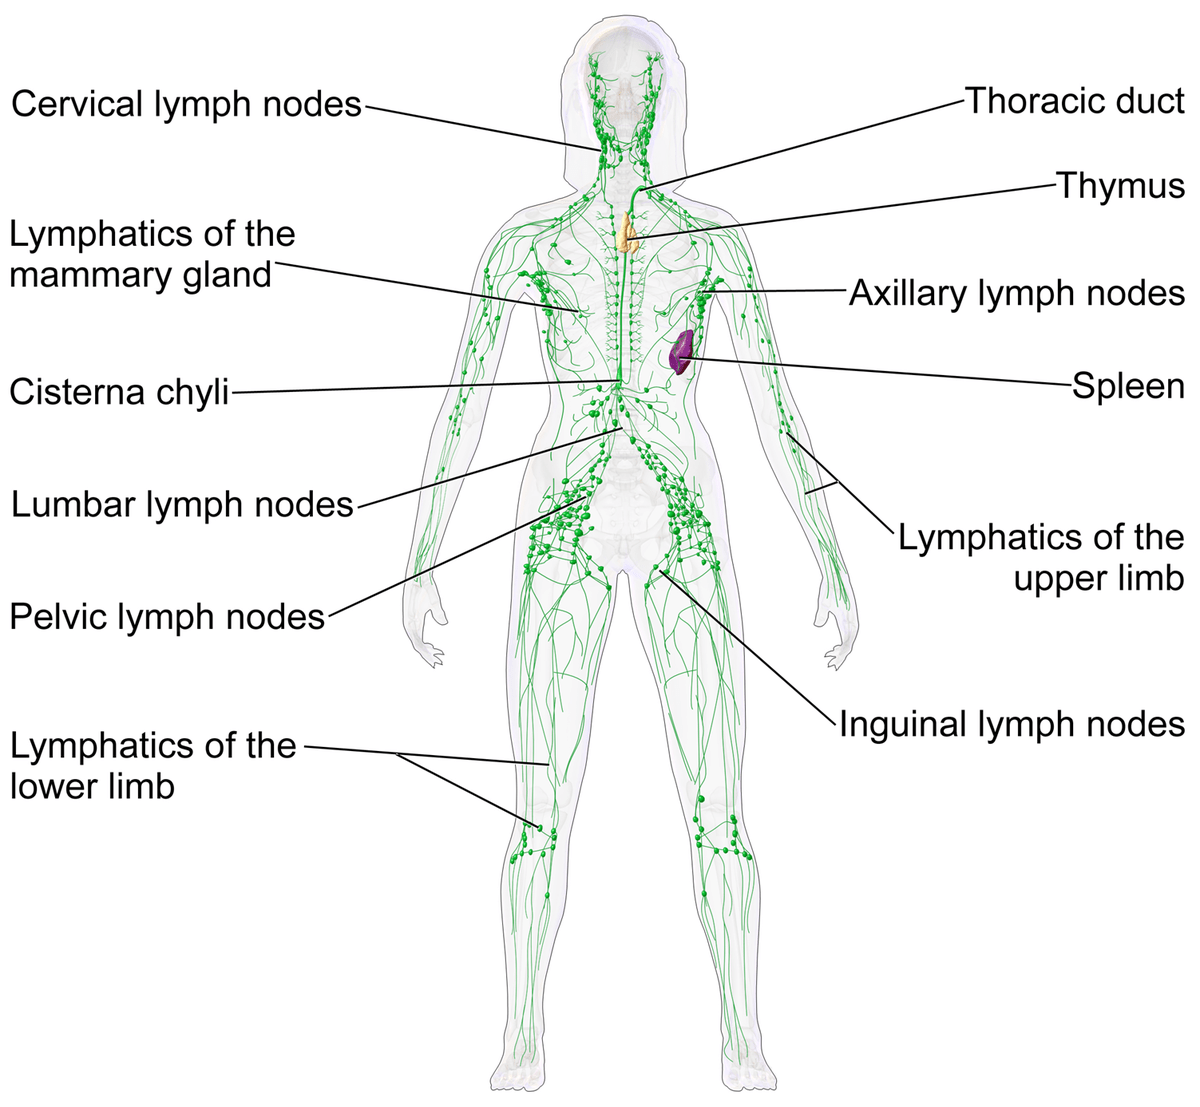 hight resolution of thoracic duct diagram